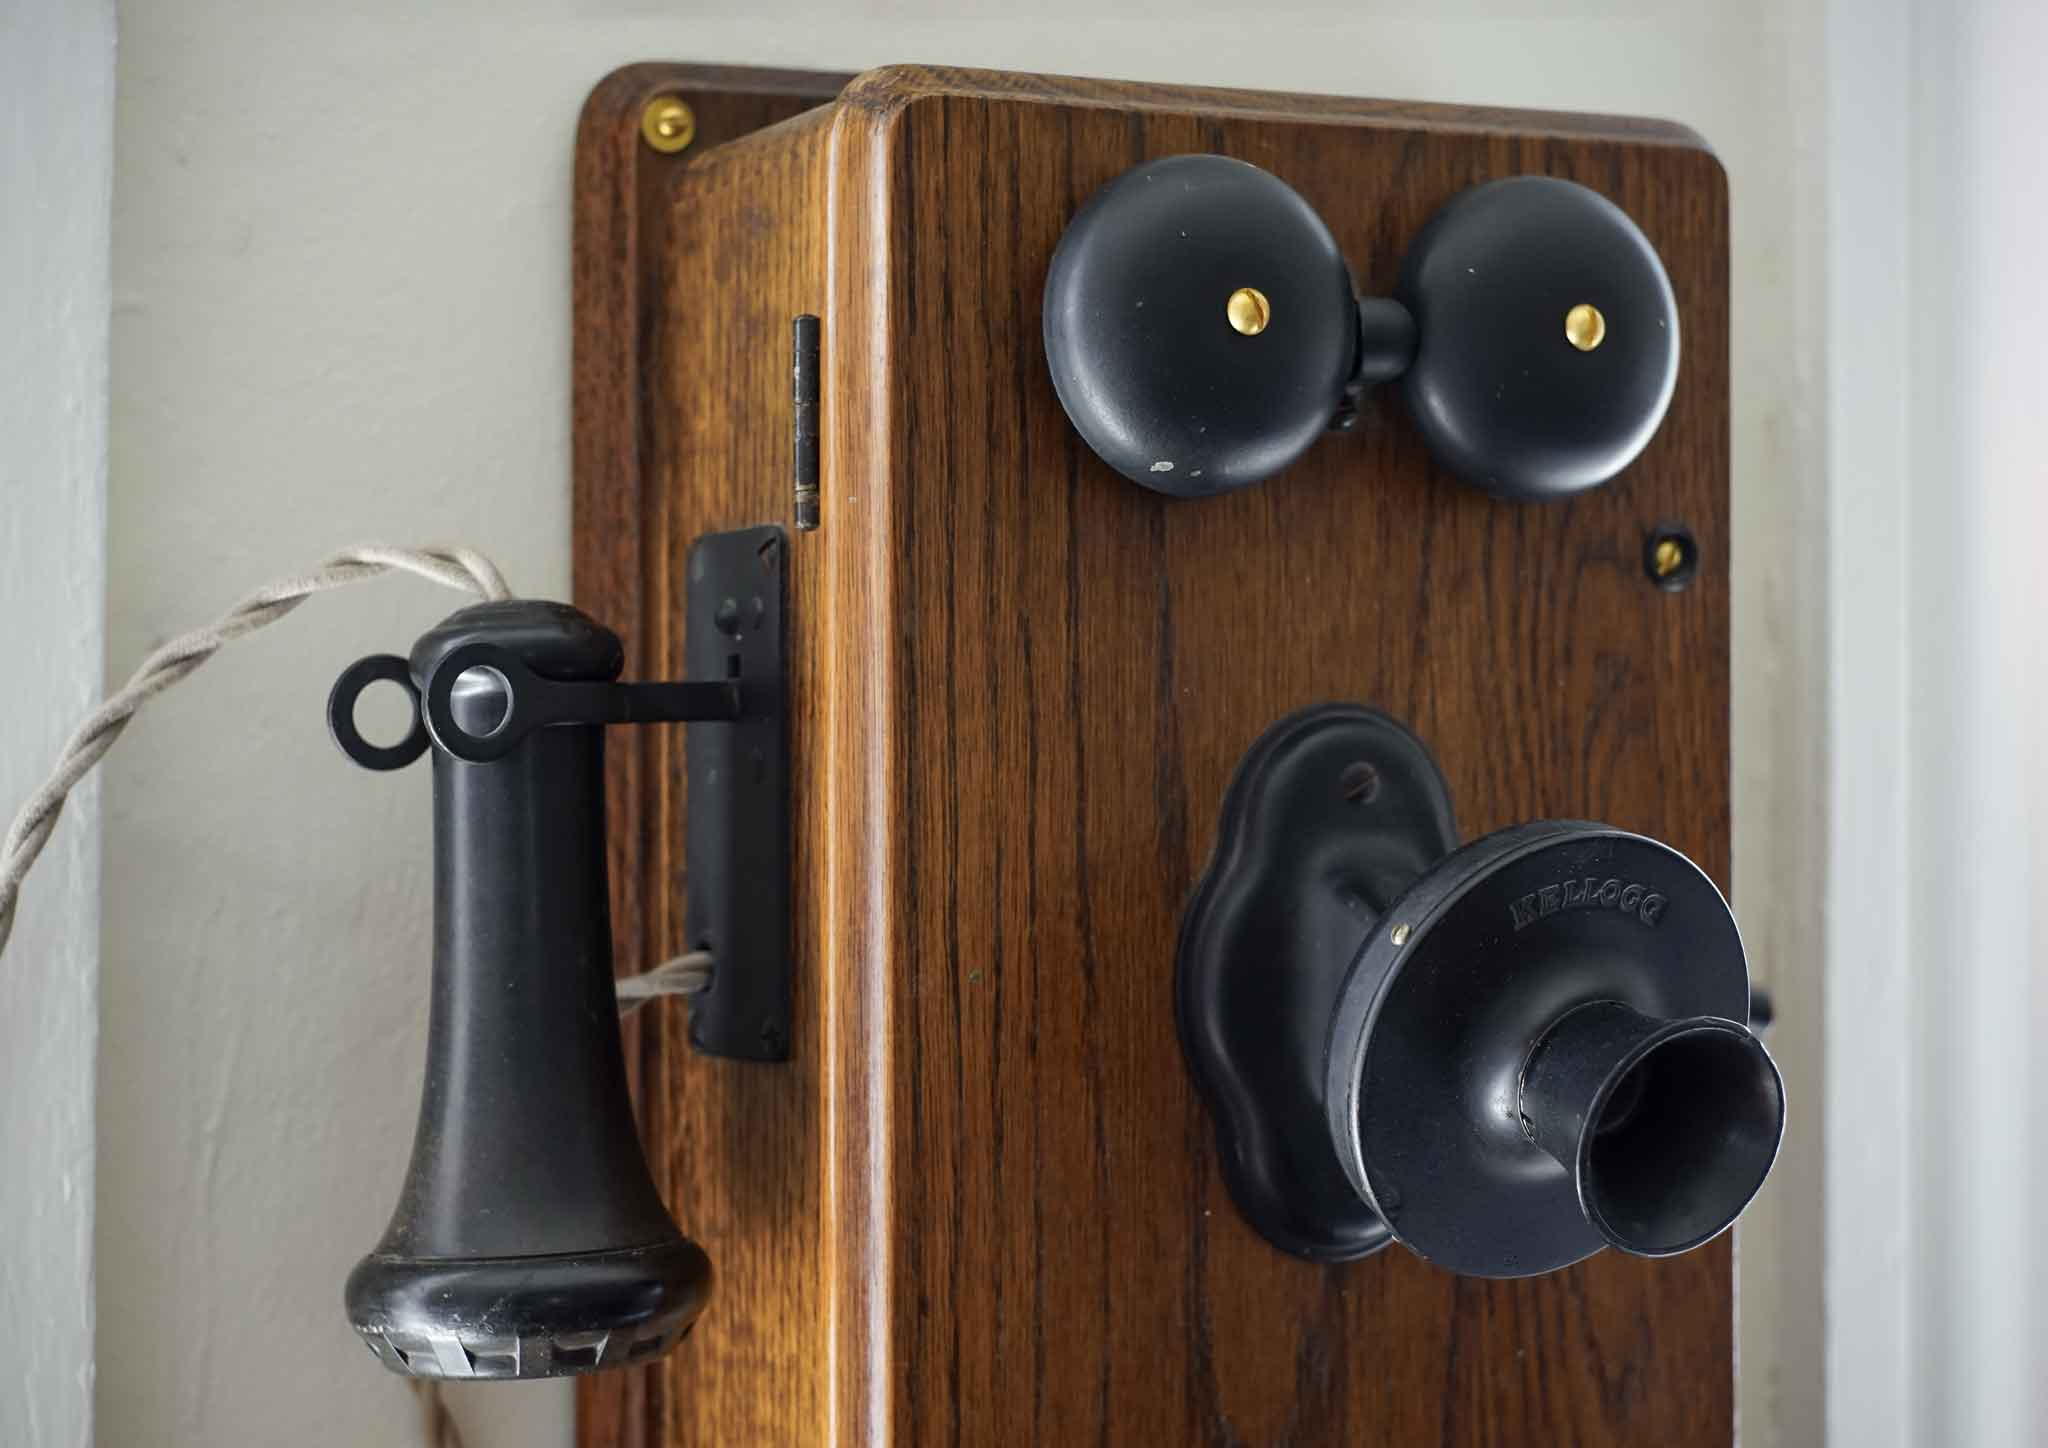 Let's combine a cheap wireless doorbell with a century-old phone